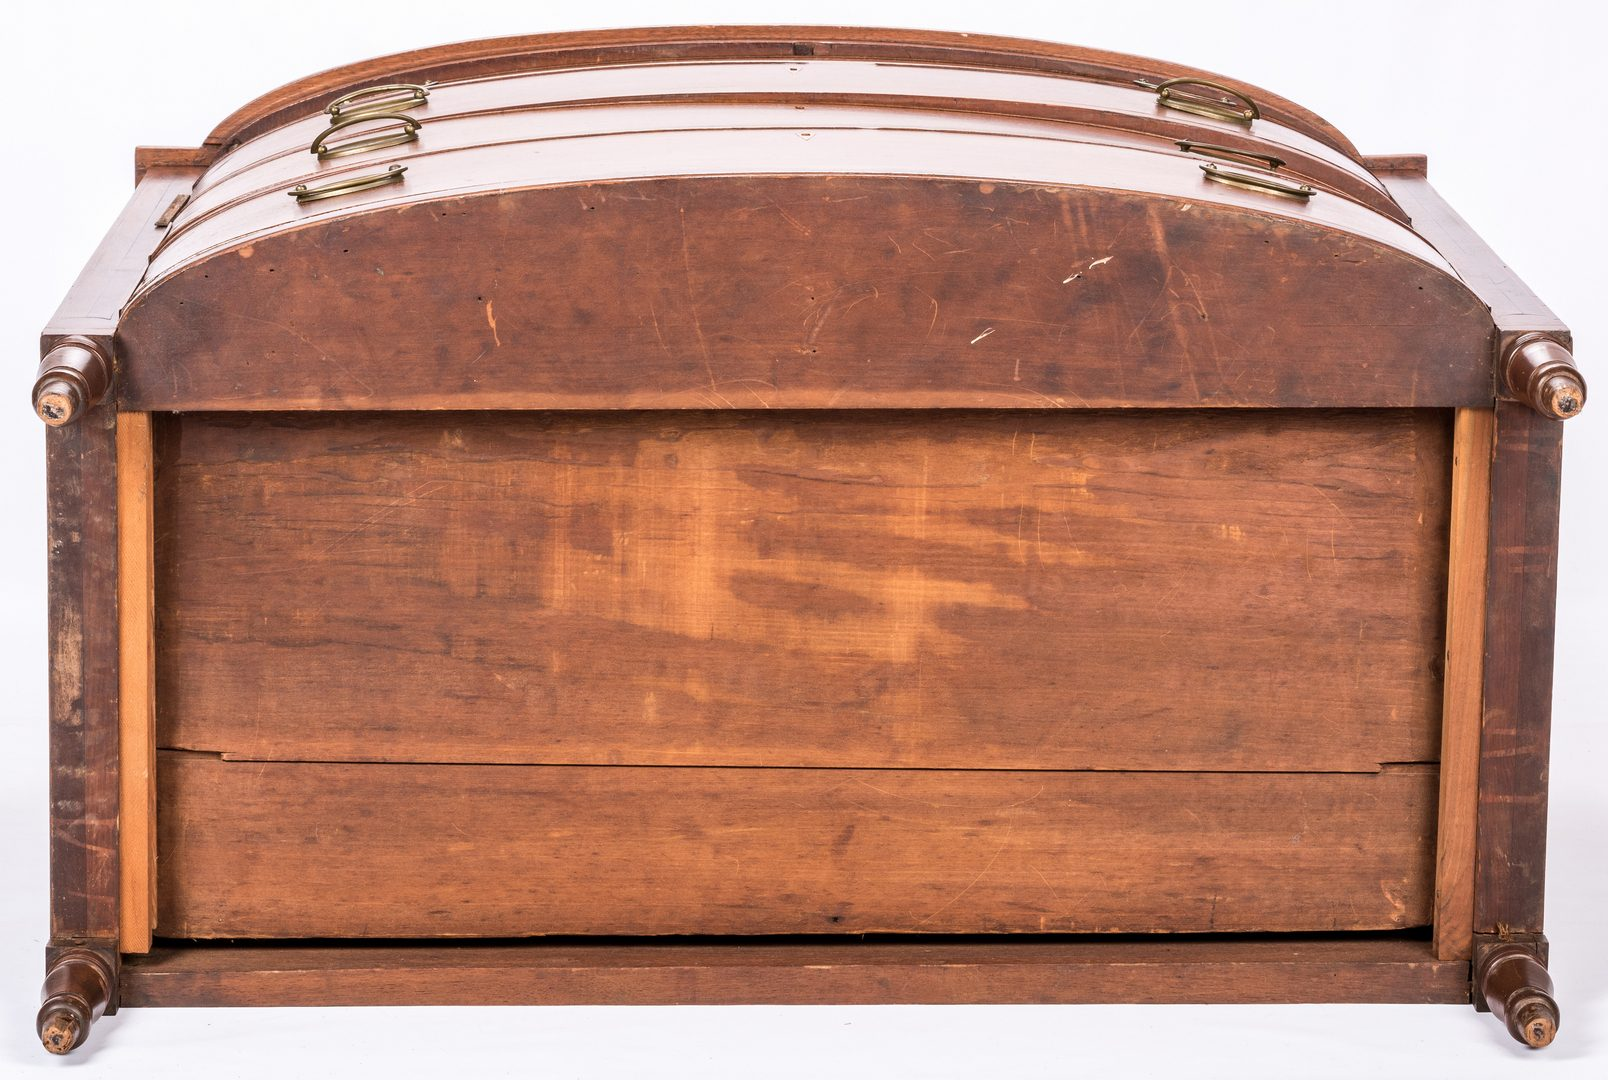 Lot 178: Southern Inlaid Sheraton Bowfront Chest